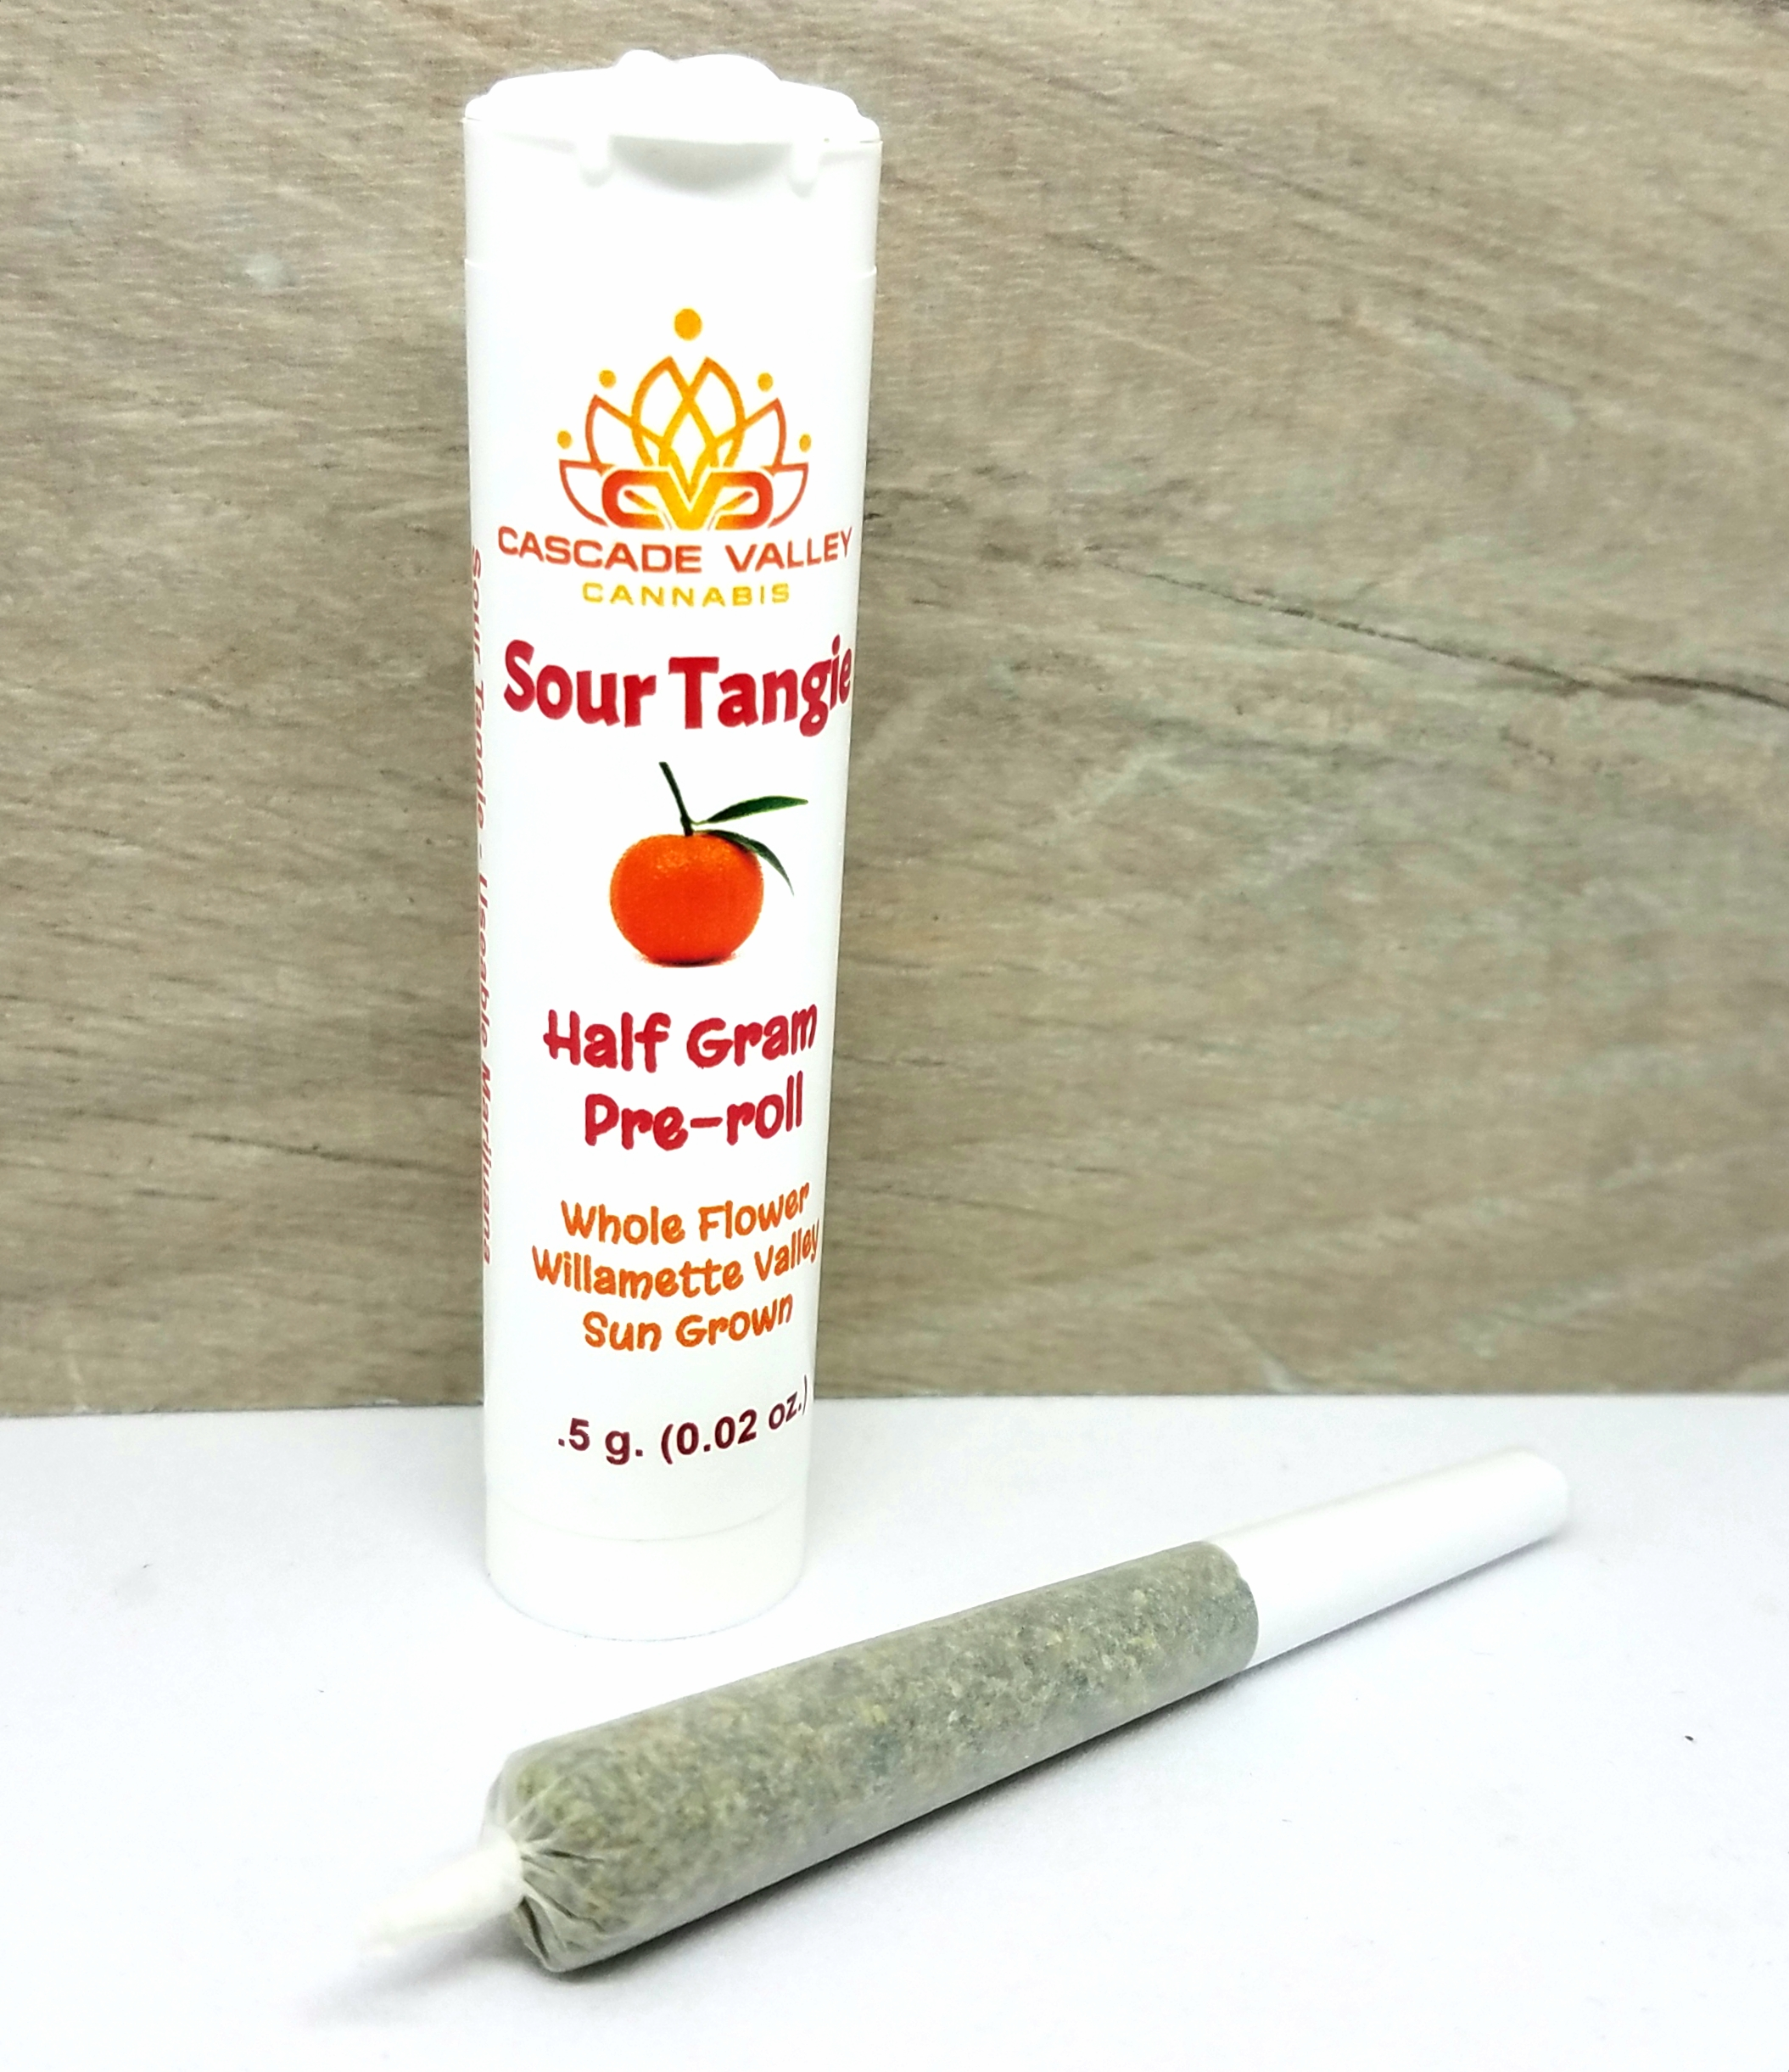 Sour Tangie 1/2g pre-roll grown and produced by Cascade Valley Cannabis